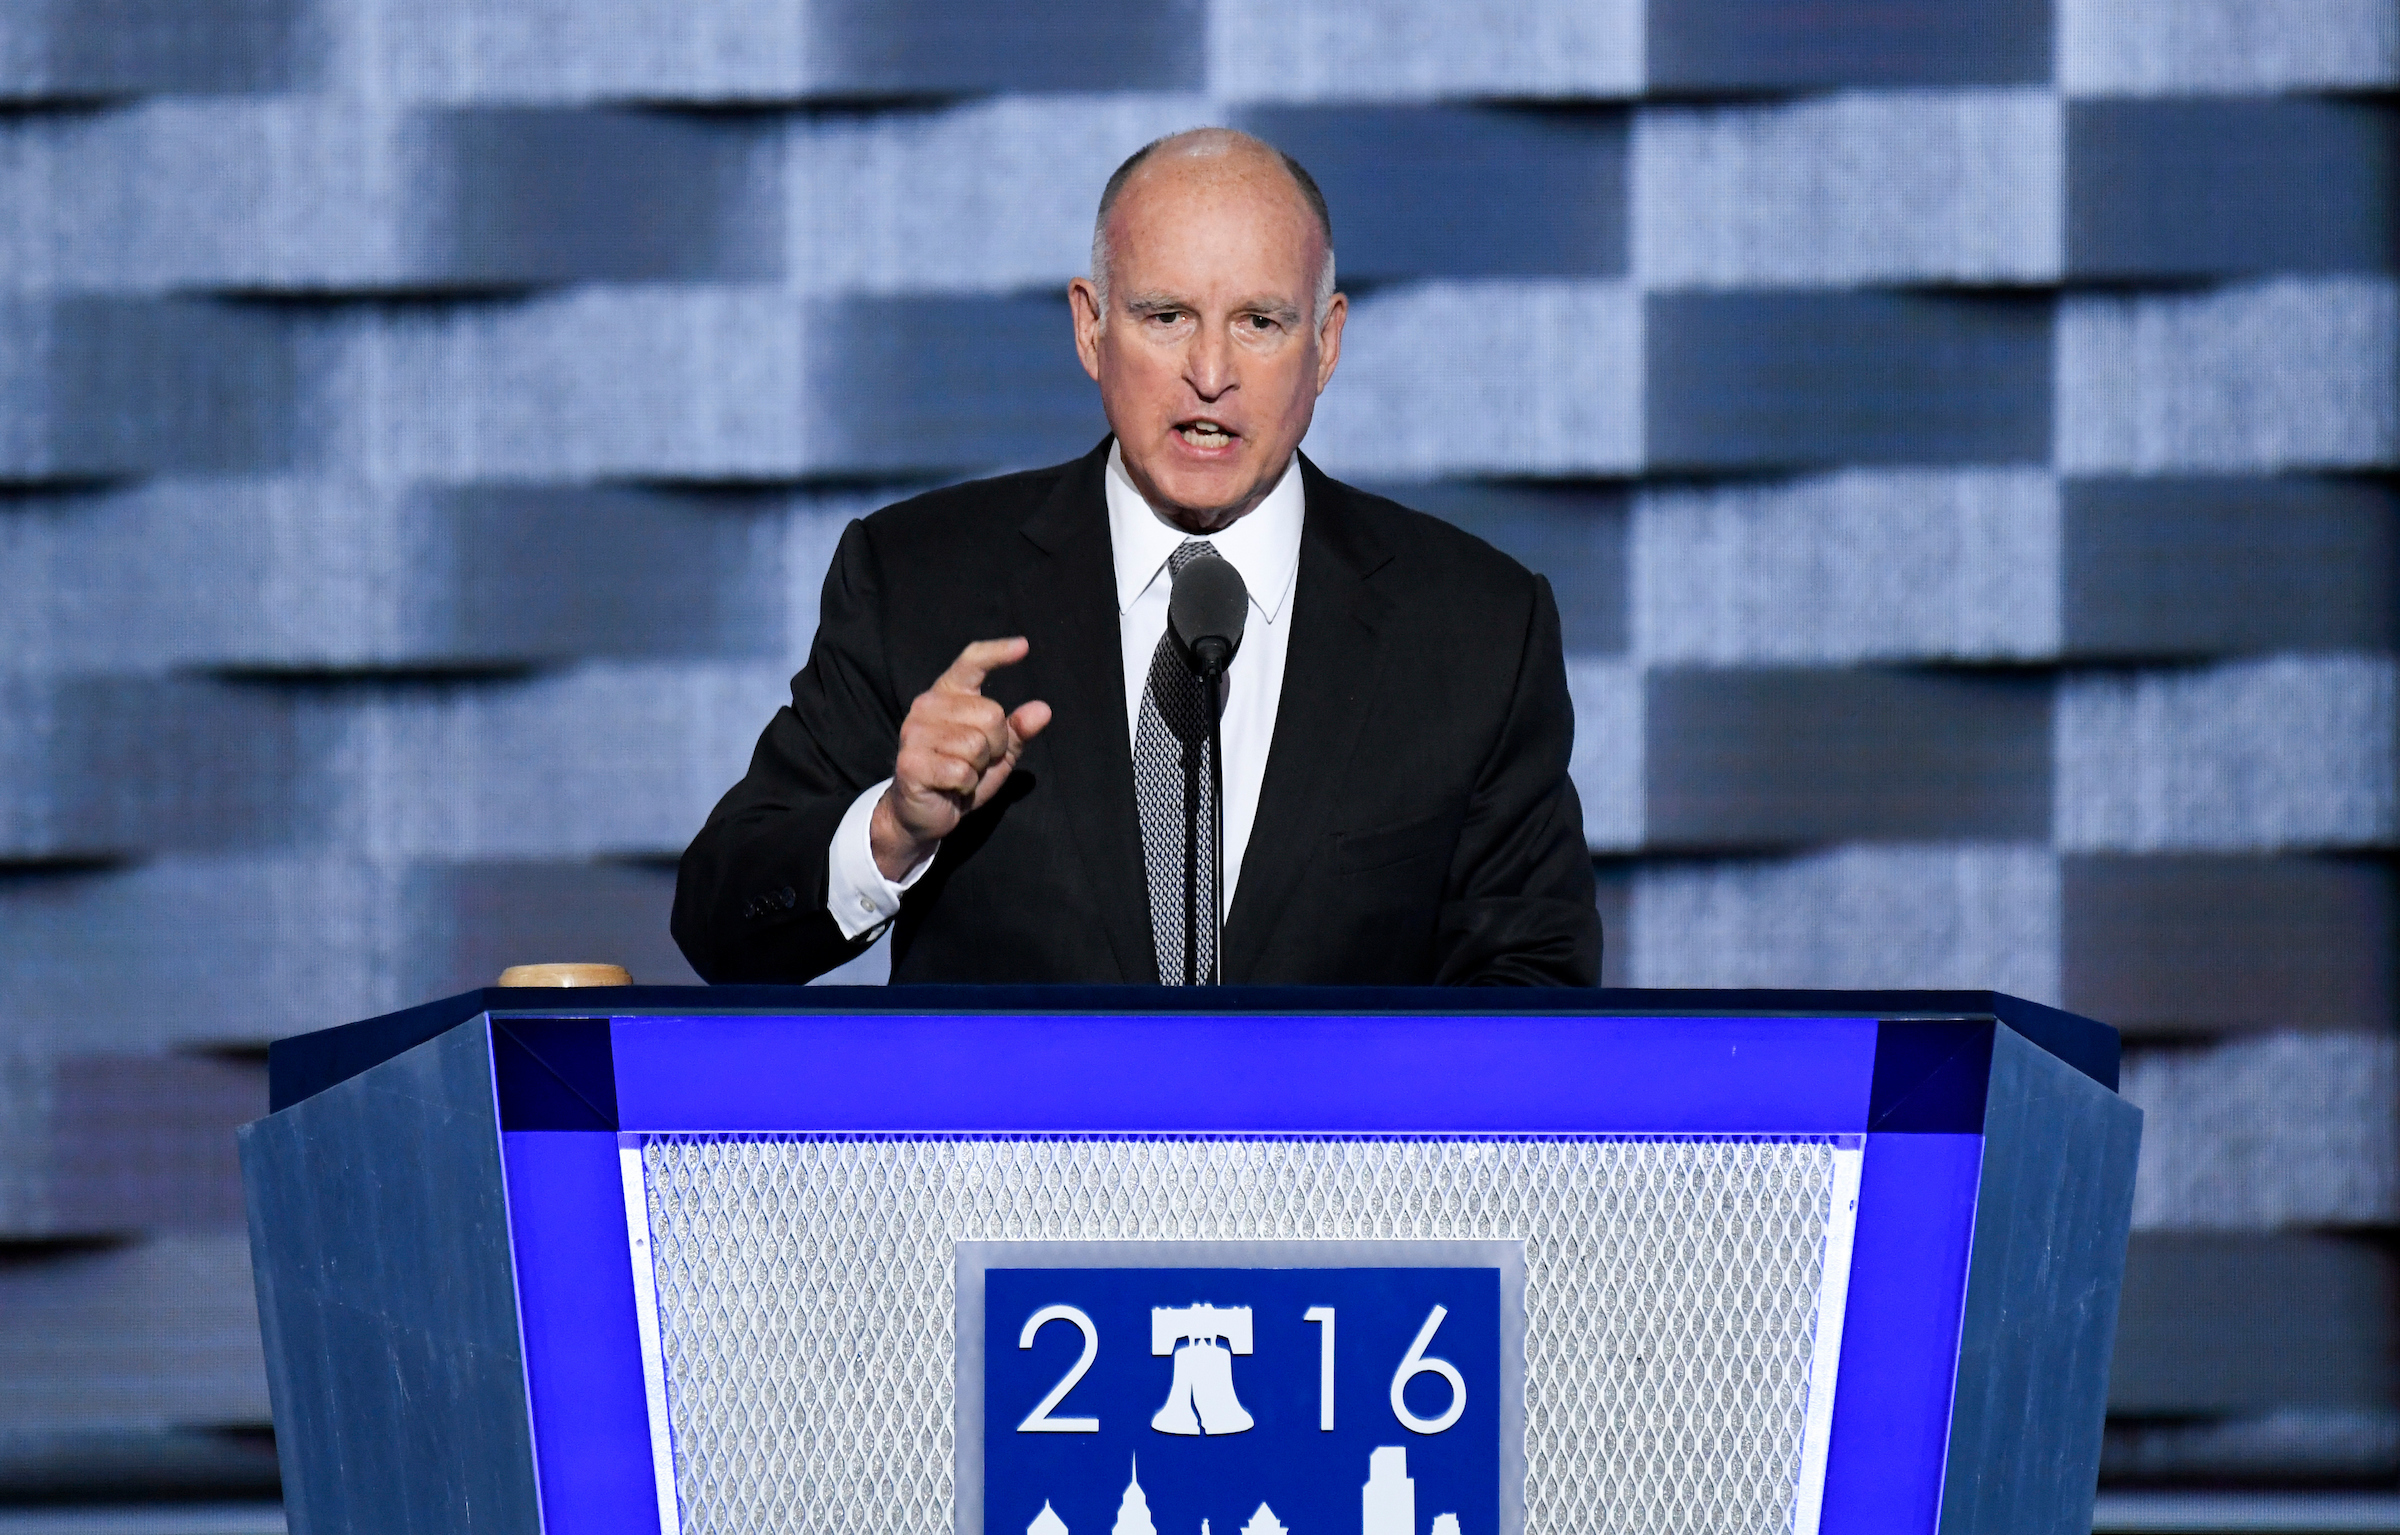 UNITED STATES - JULY 27: California Governor Jerry Brown speaks at the Democratic National Convention in Philadelphia on Wednesday, July 27, 2016. (Photo By Bill Clark/CQ Roll Call)